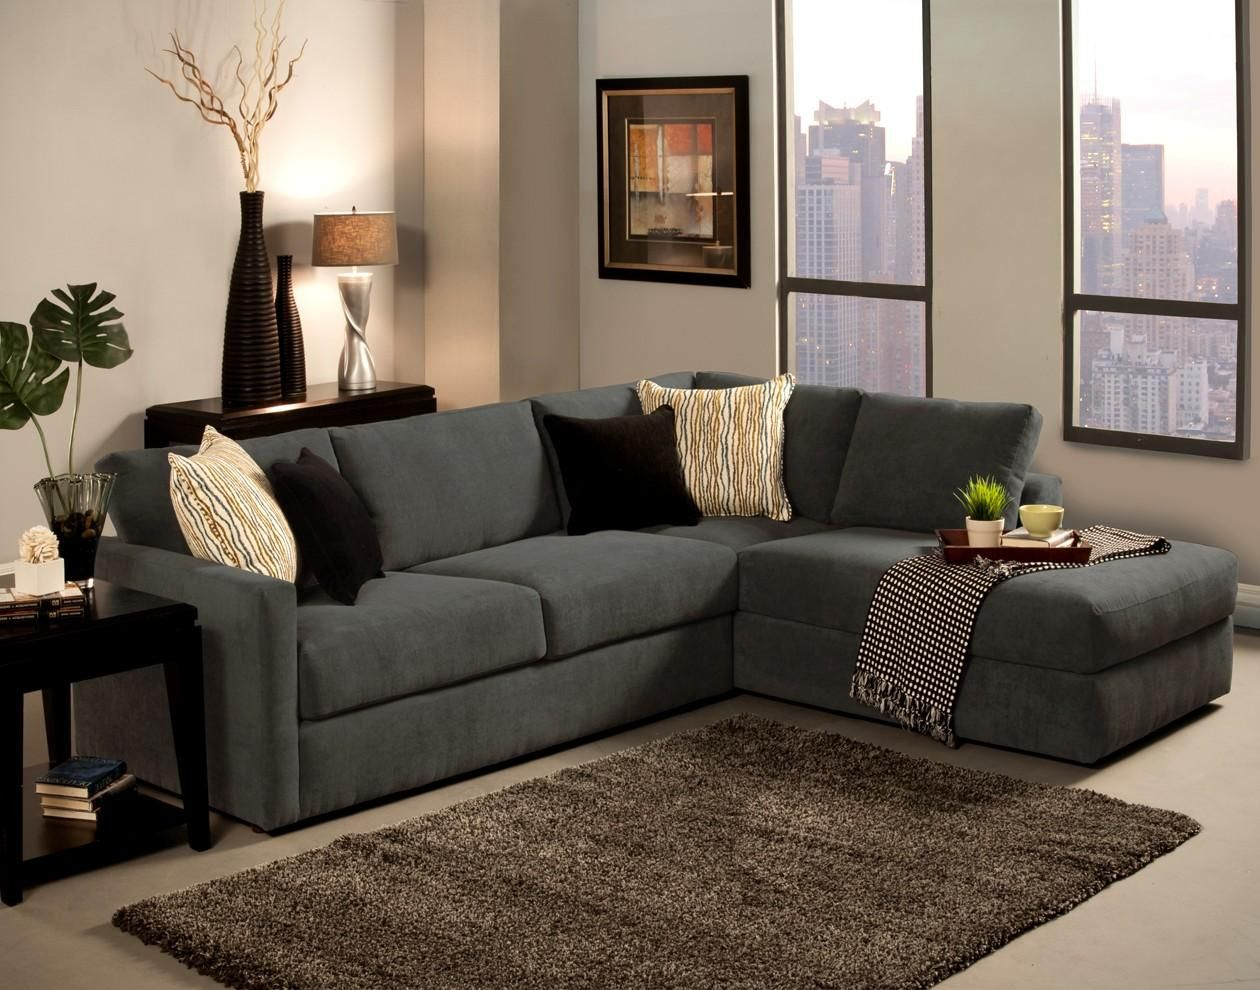 Upholstered Sectional Couch With Chaise Lounge And Carpet